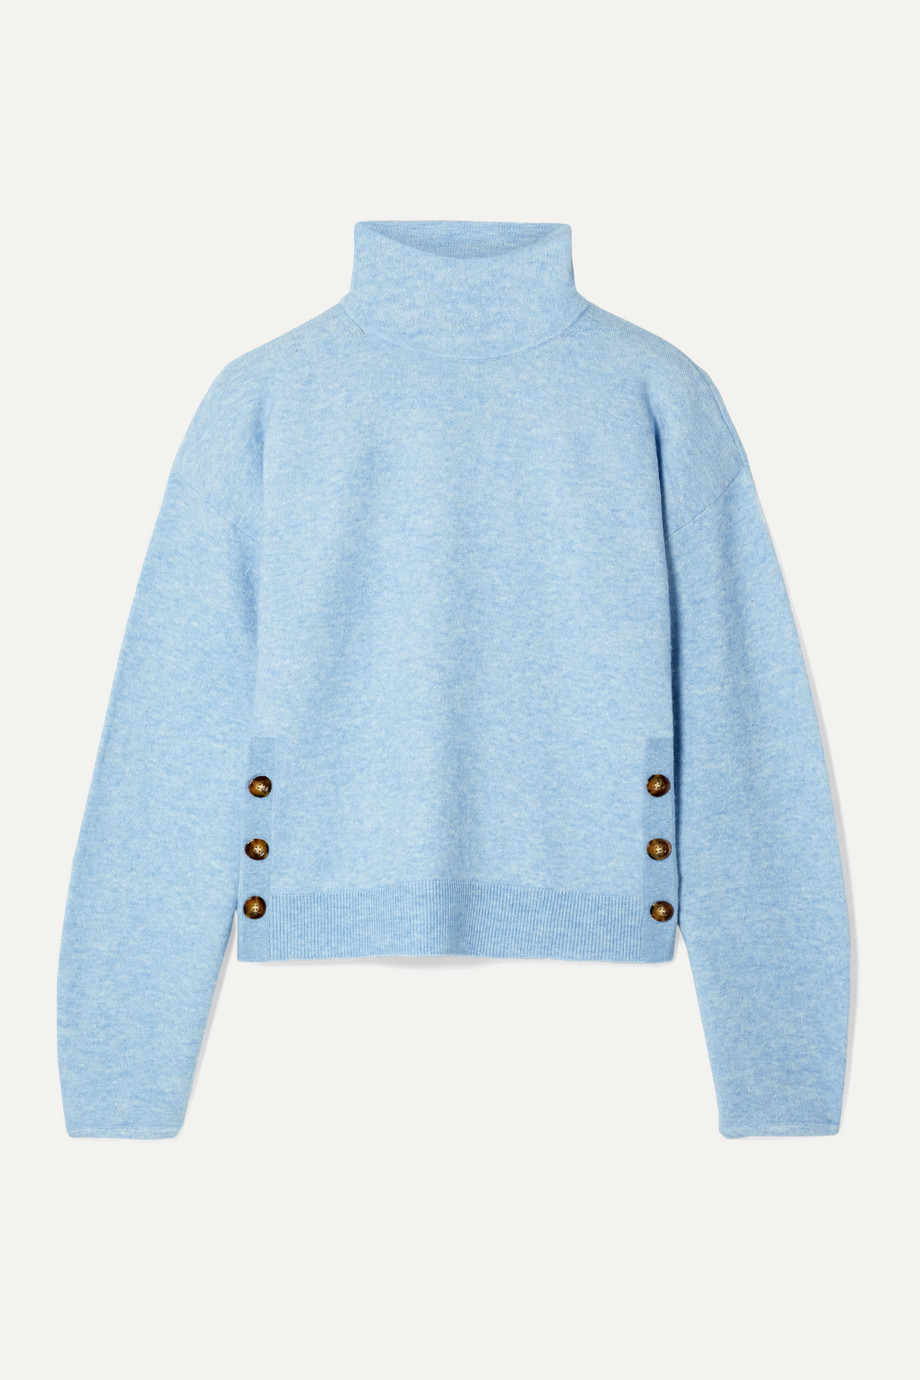 Veronica Beard Cady button-detailed knitted turtleneck sweater